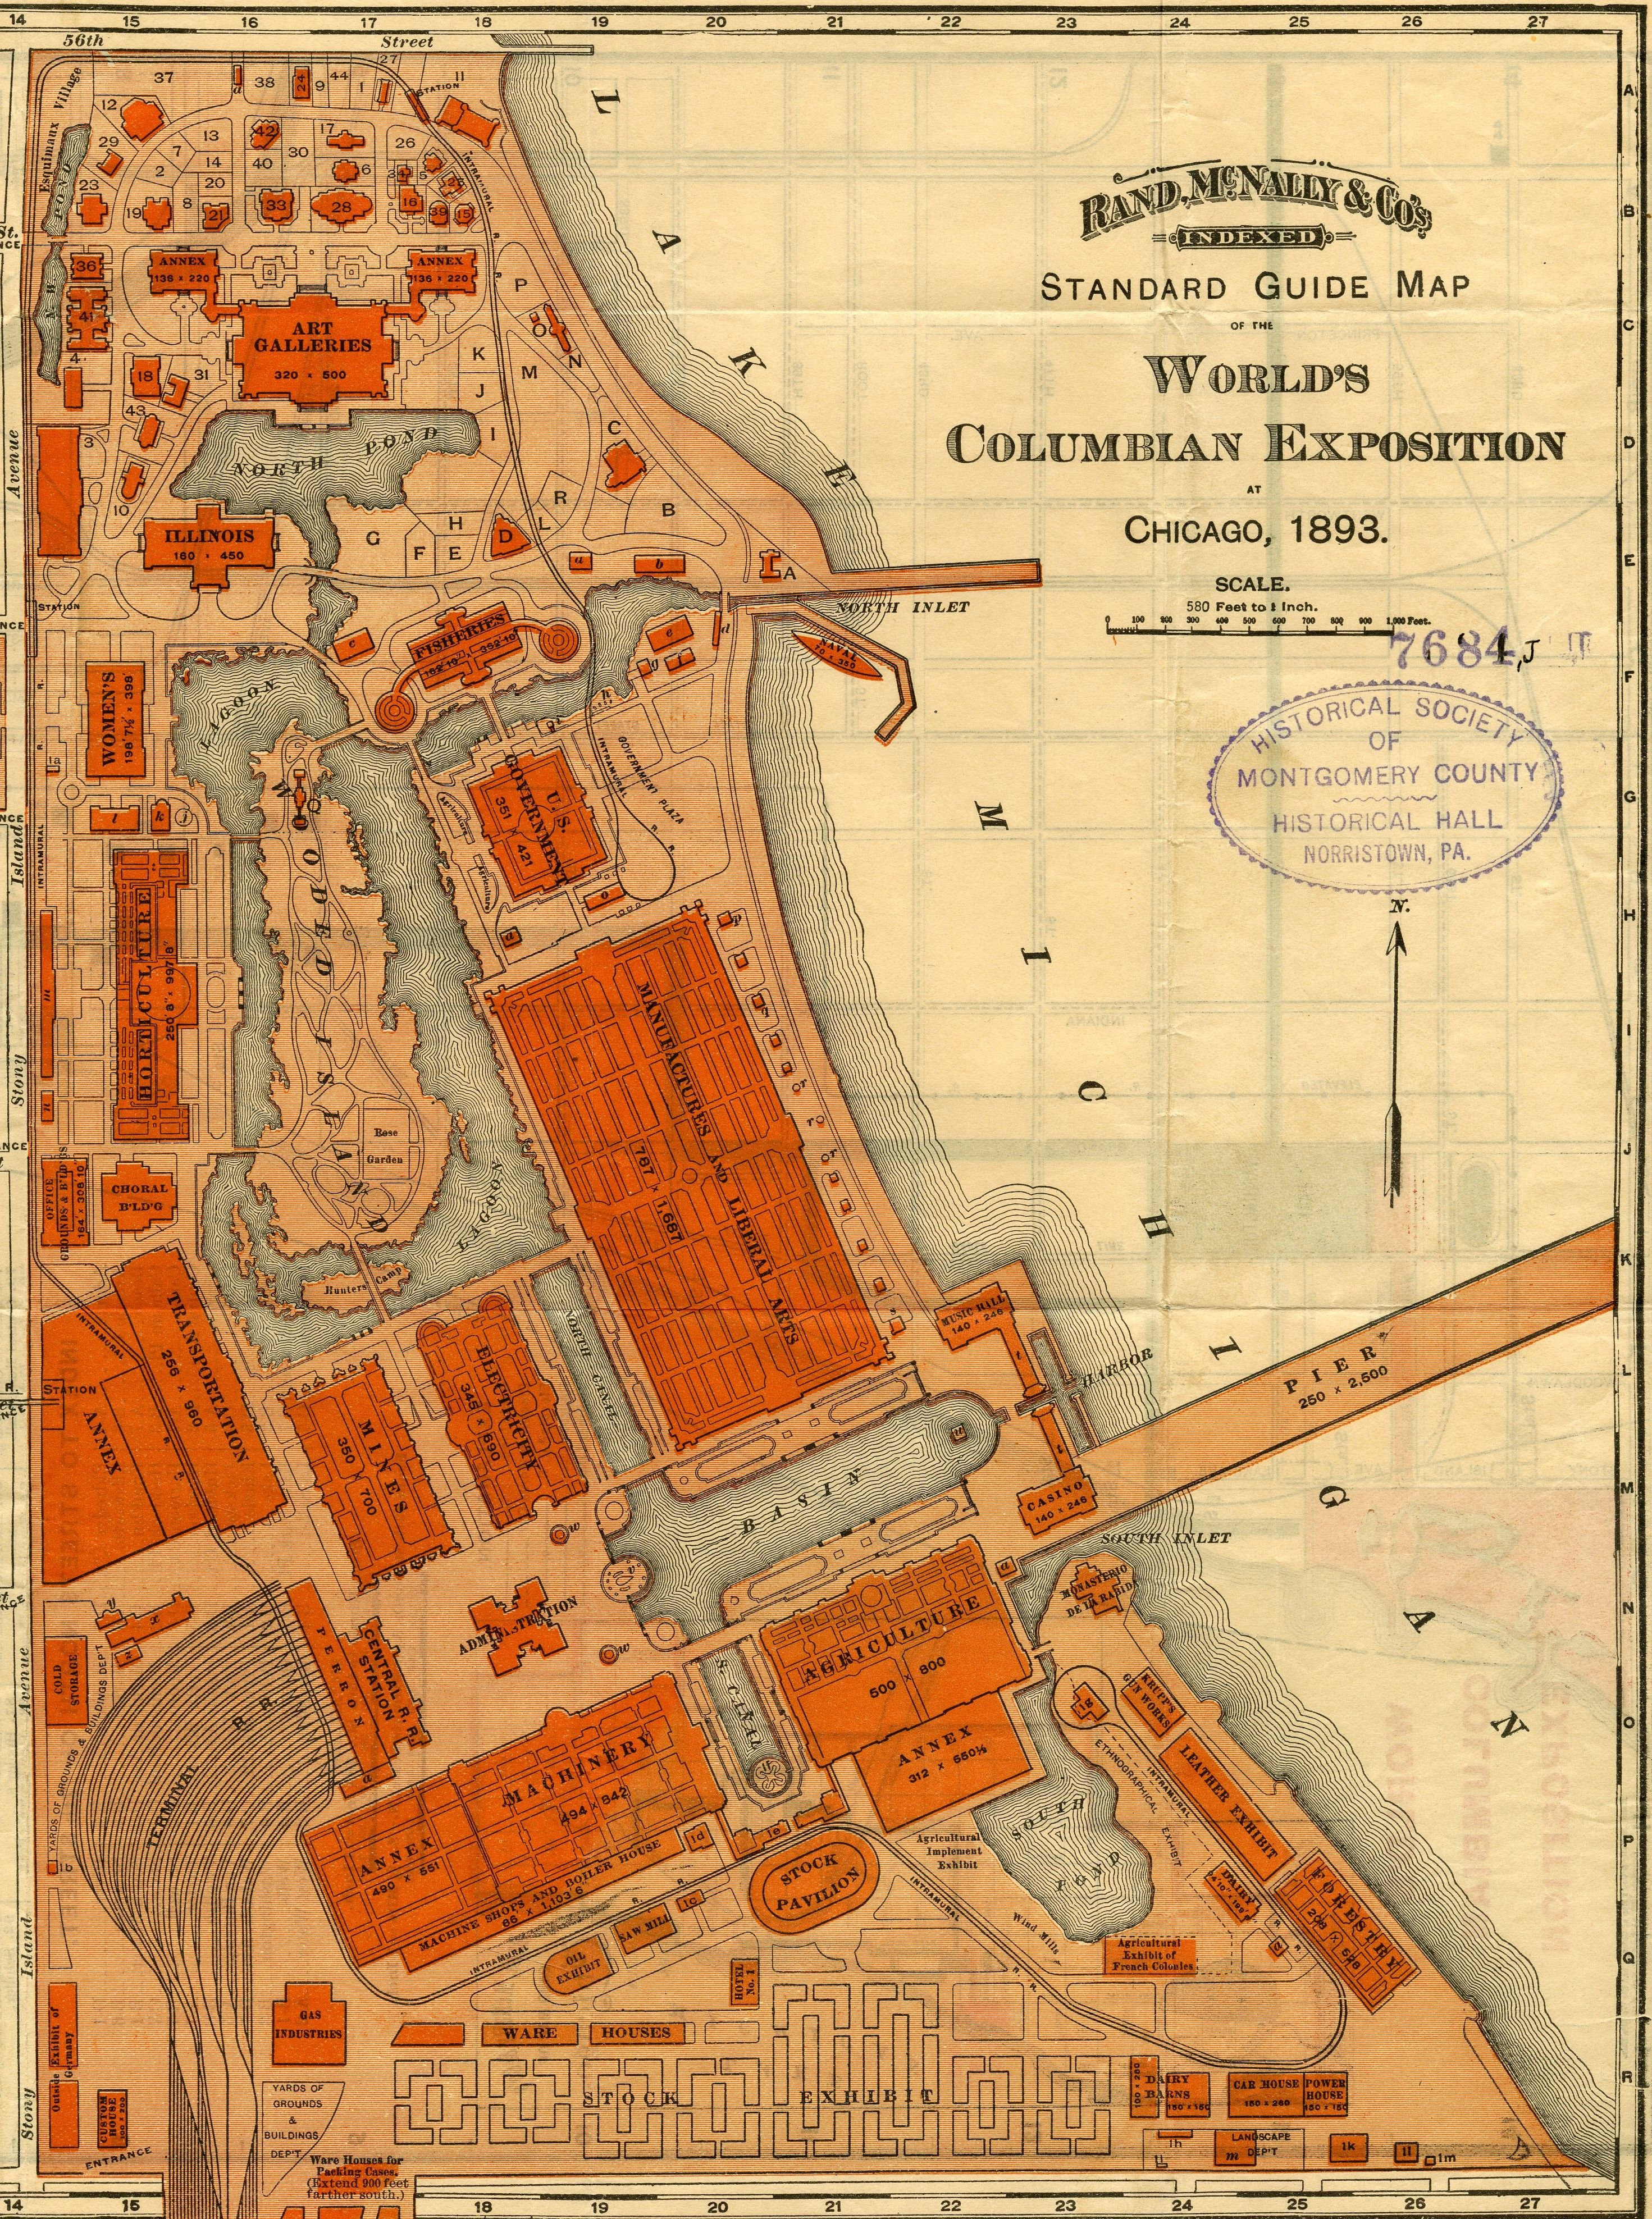 Chicago Columbian Exposition Map Chicago 1893 map | 1893 Chicago World's Columbian Exposition